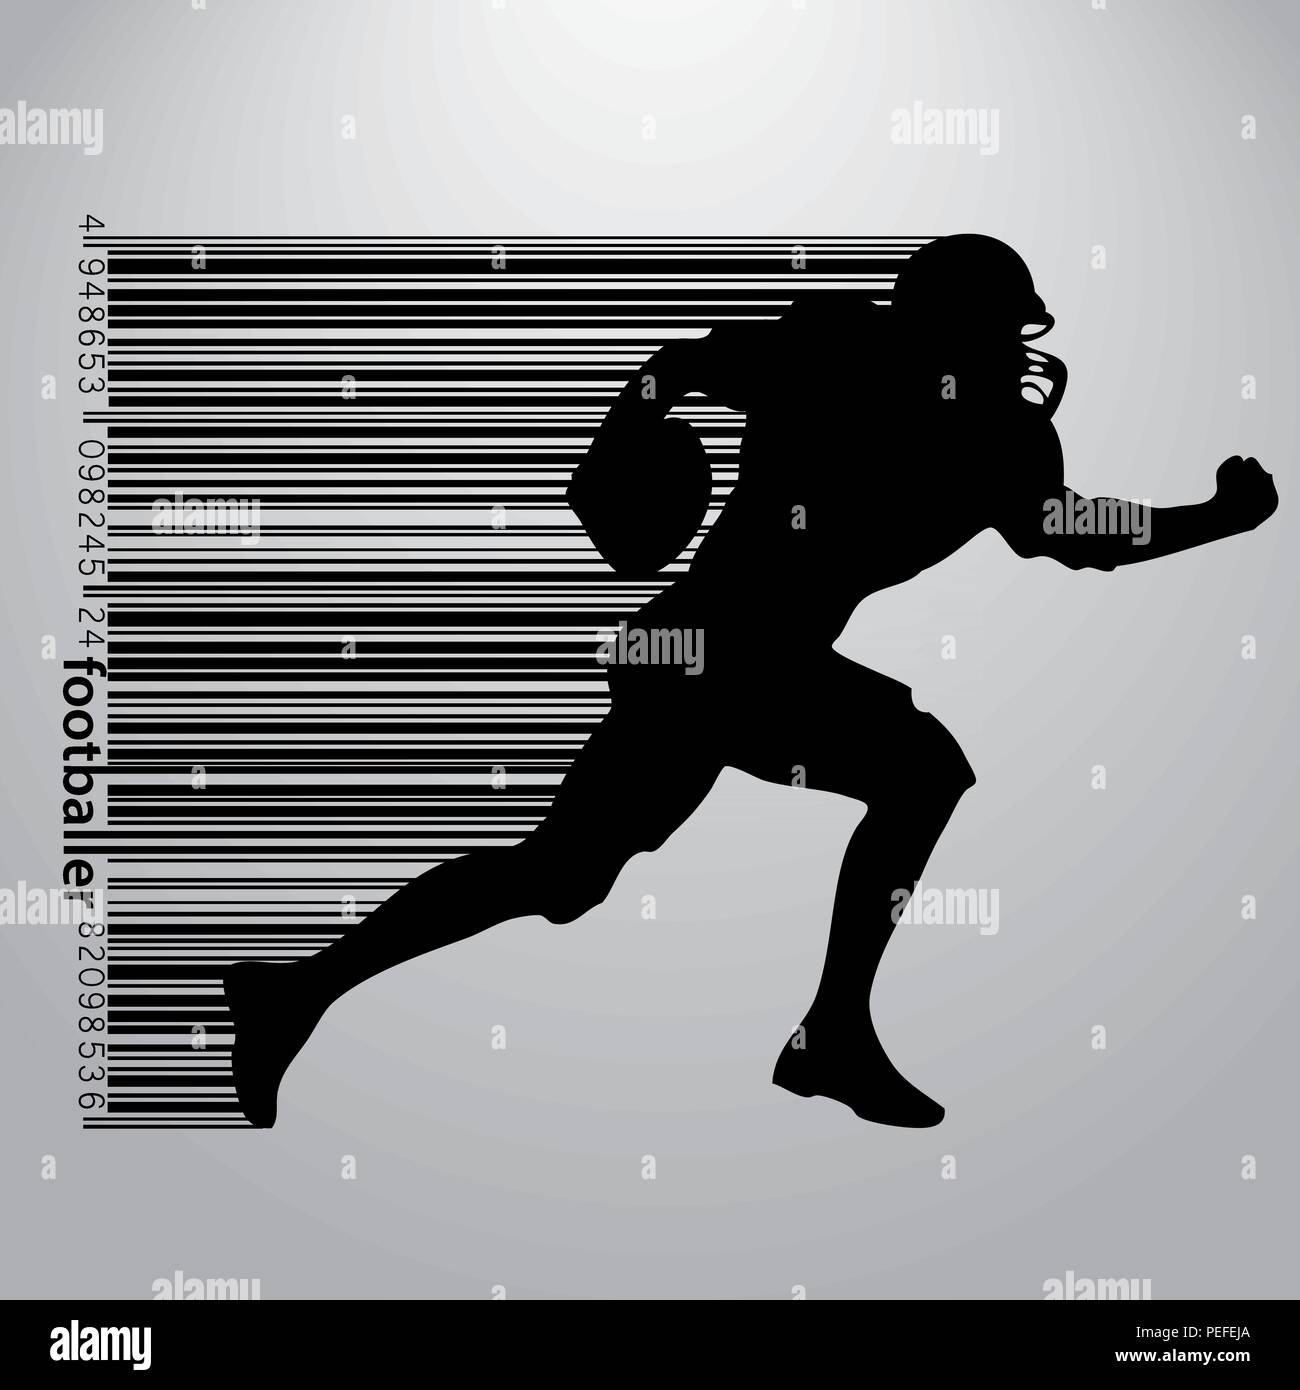 silhouette of a football player and barcode. Rugby. American footballer - Stock Vector